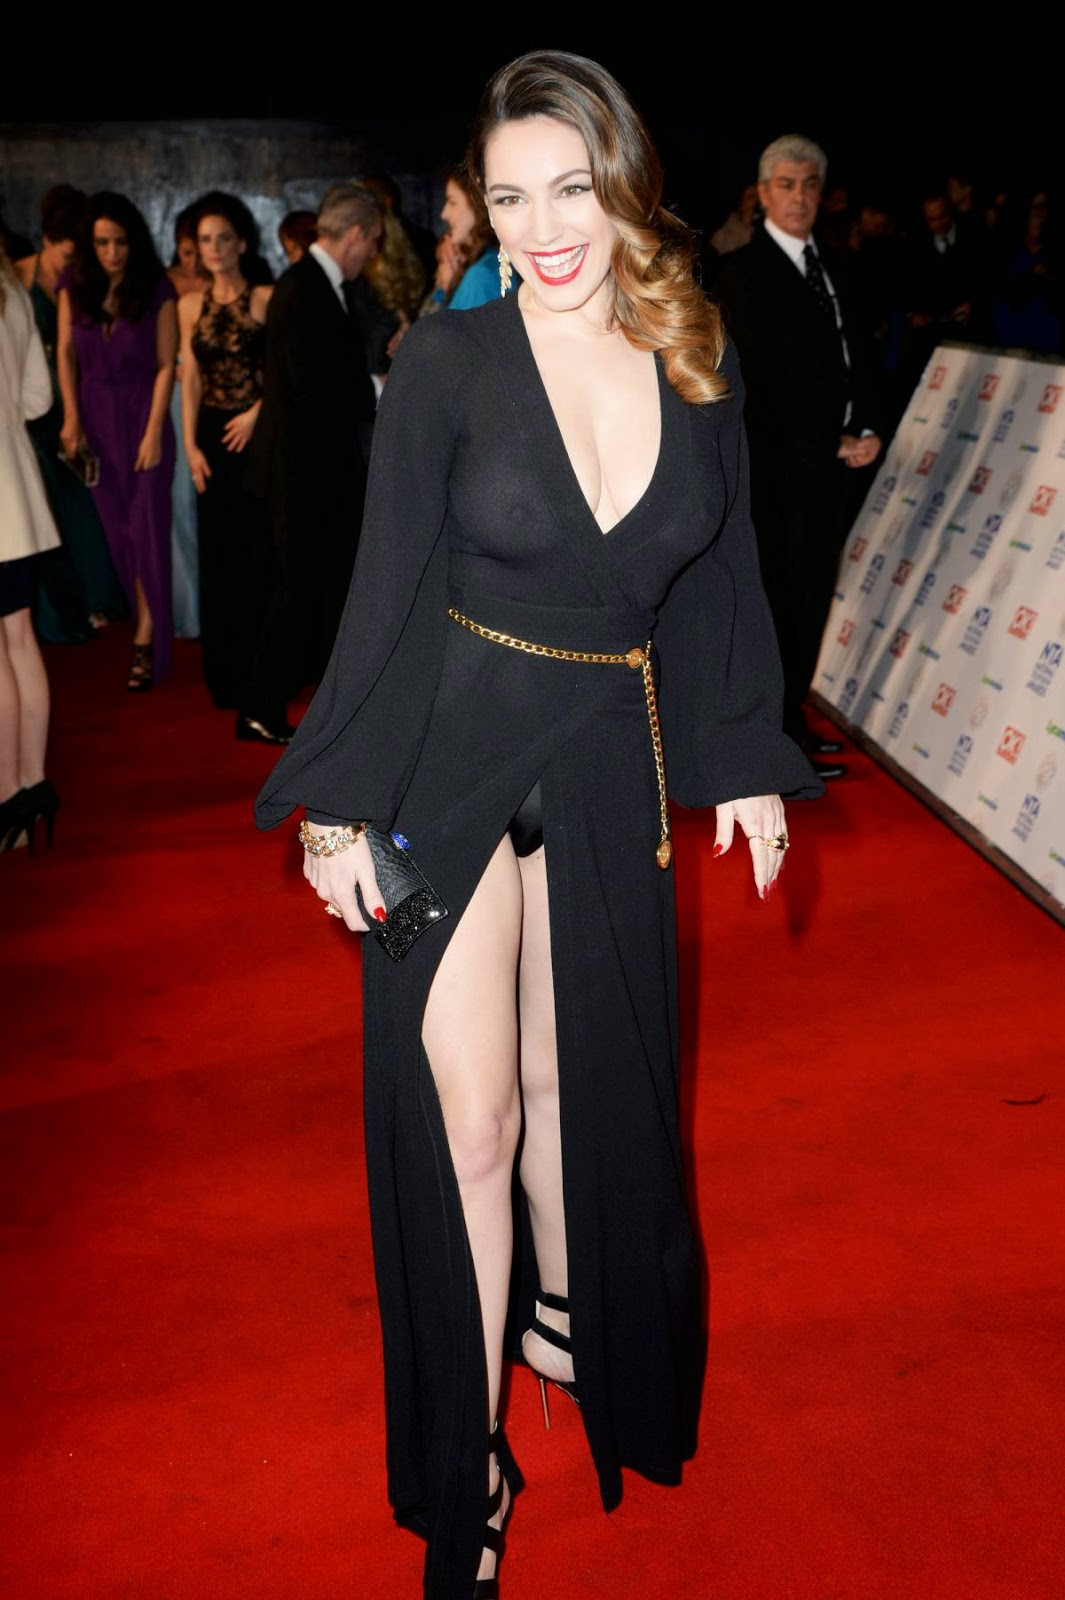 Kelly Brook Braless In A See Through Dress At The National Television Awards